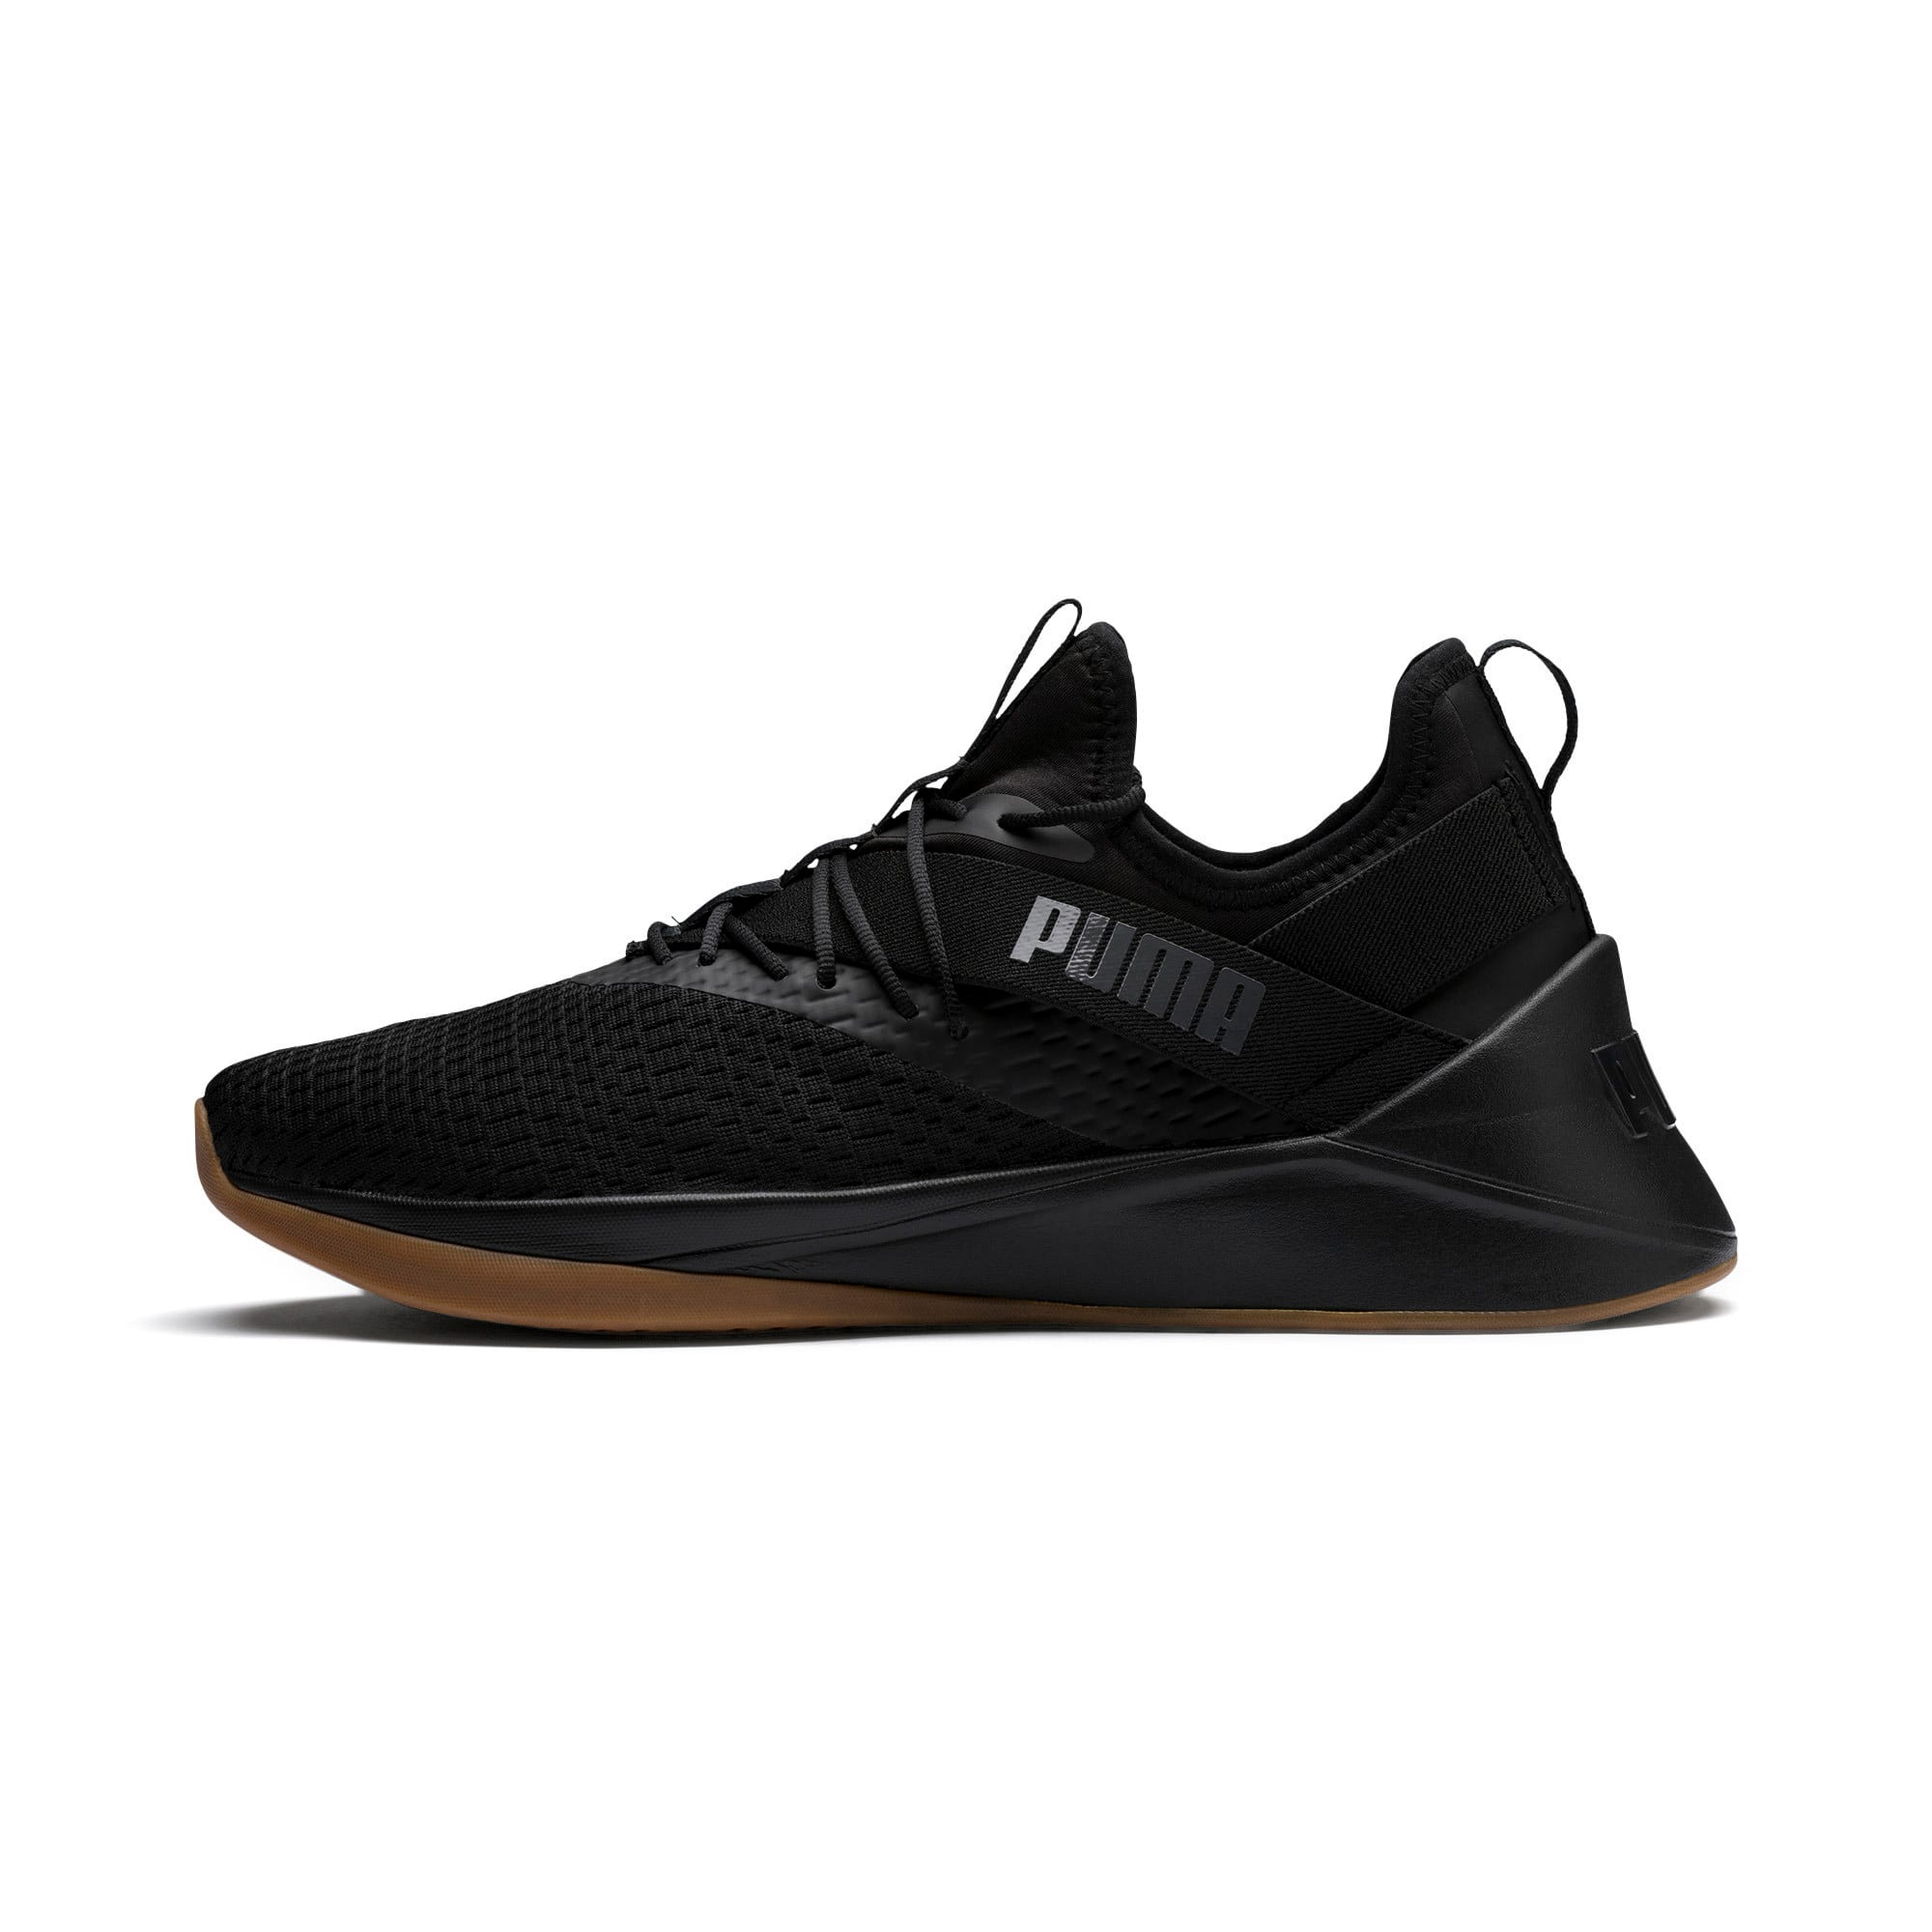 Thumbnail 1 of Jaab XT Summer Men's Training Shoes, Puma Black-Asphalt, medium